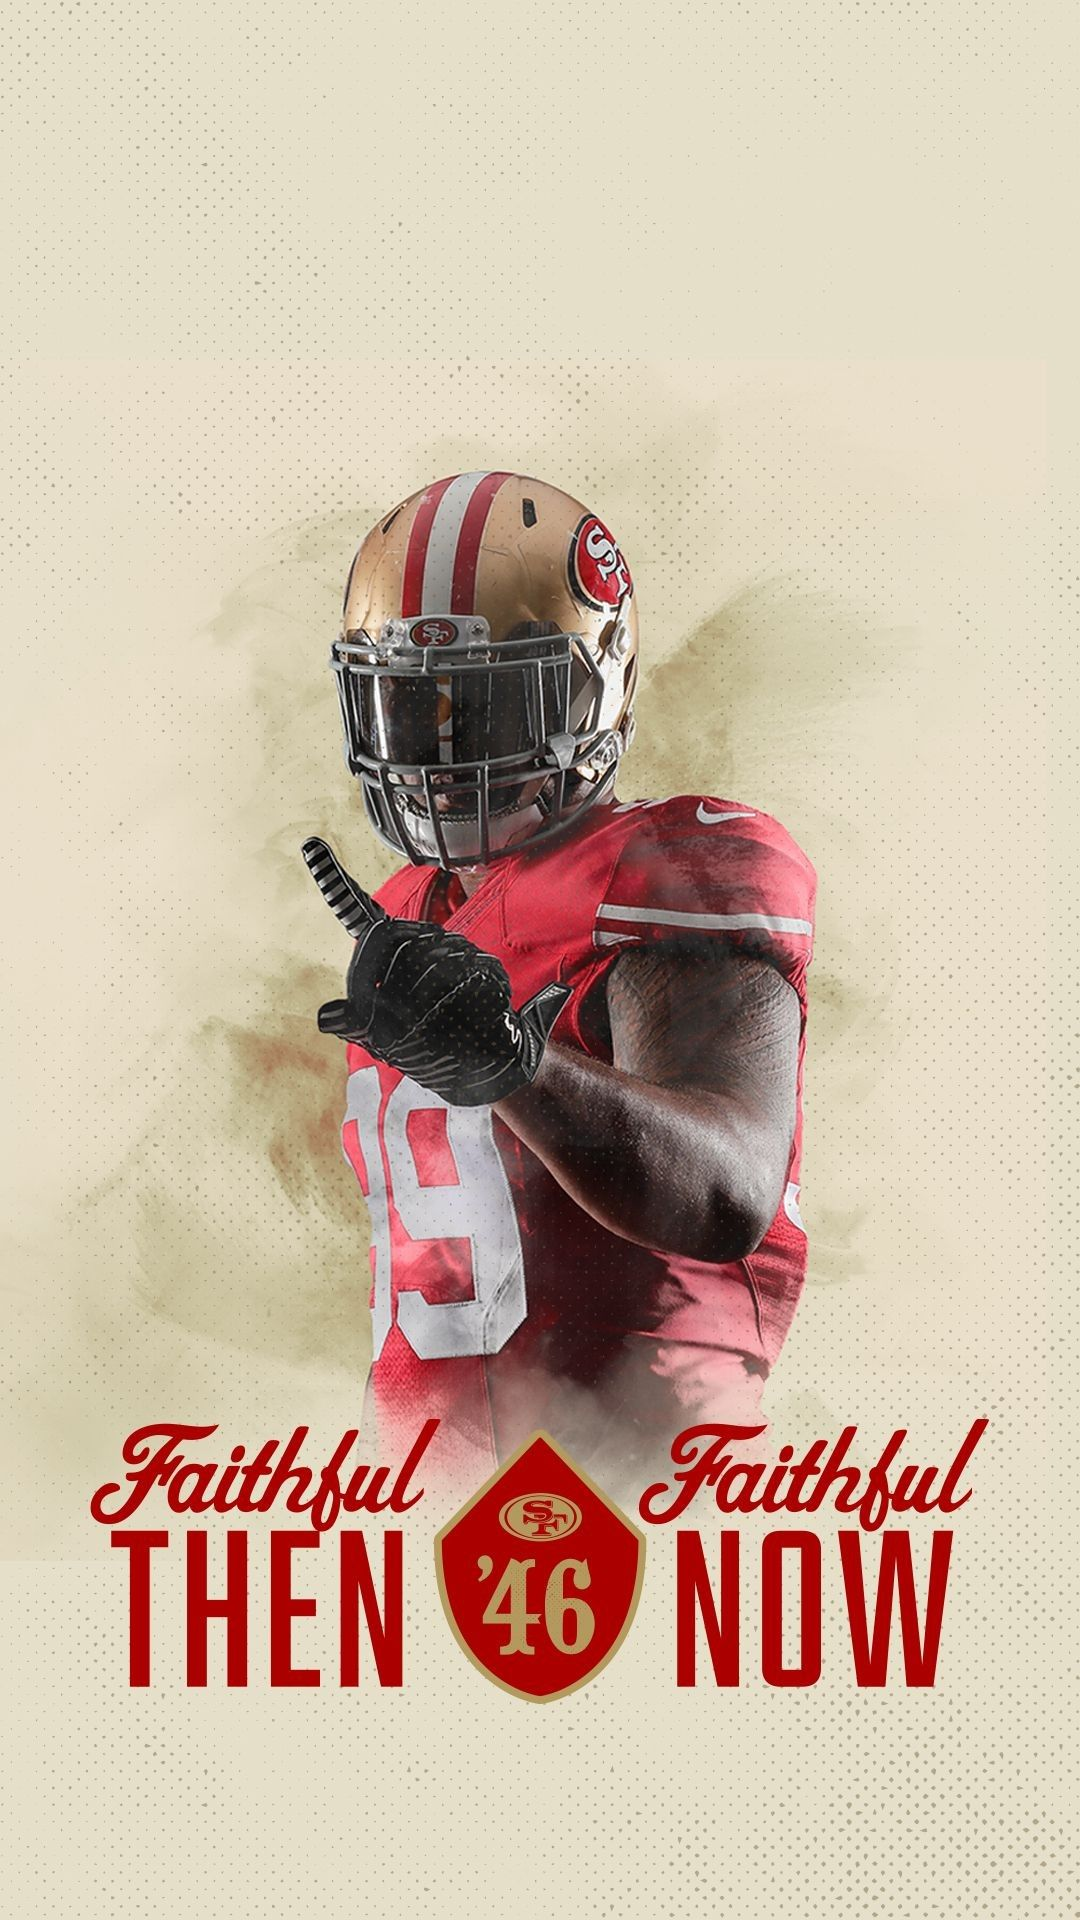 Pin by Kanson on Gridiron Elite Wallpaper, Poster, 49ers